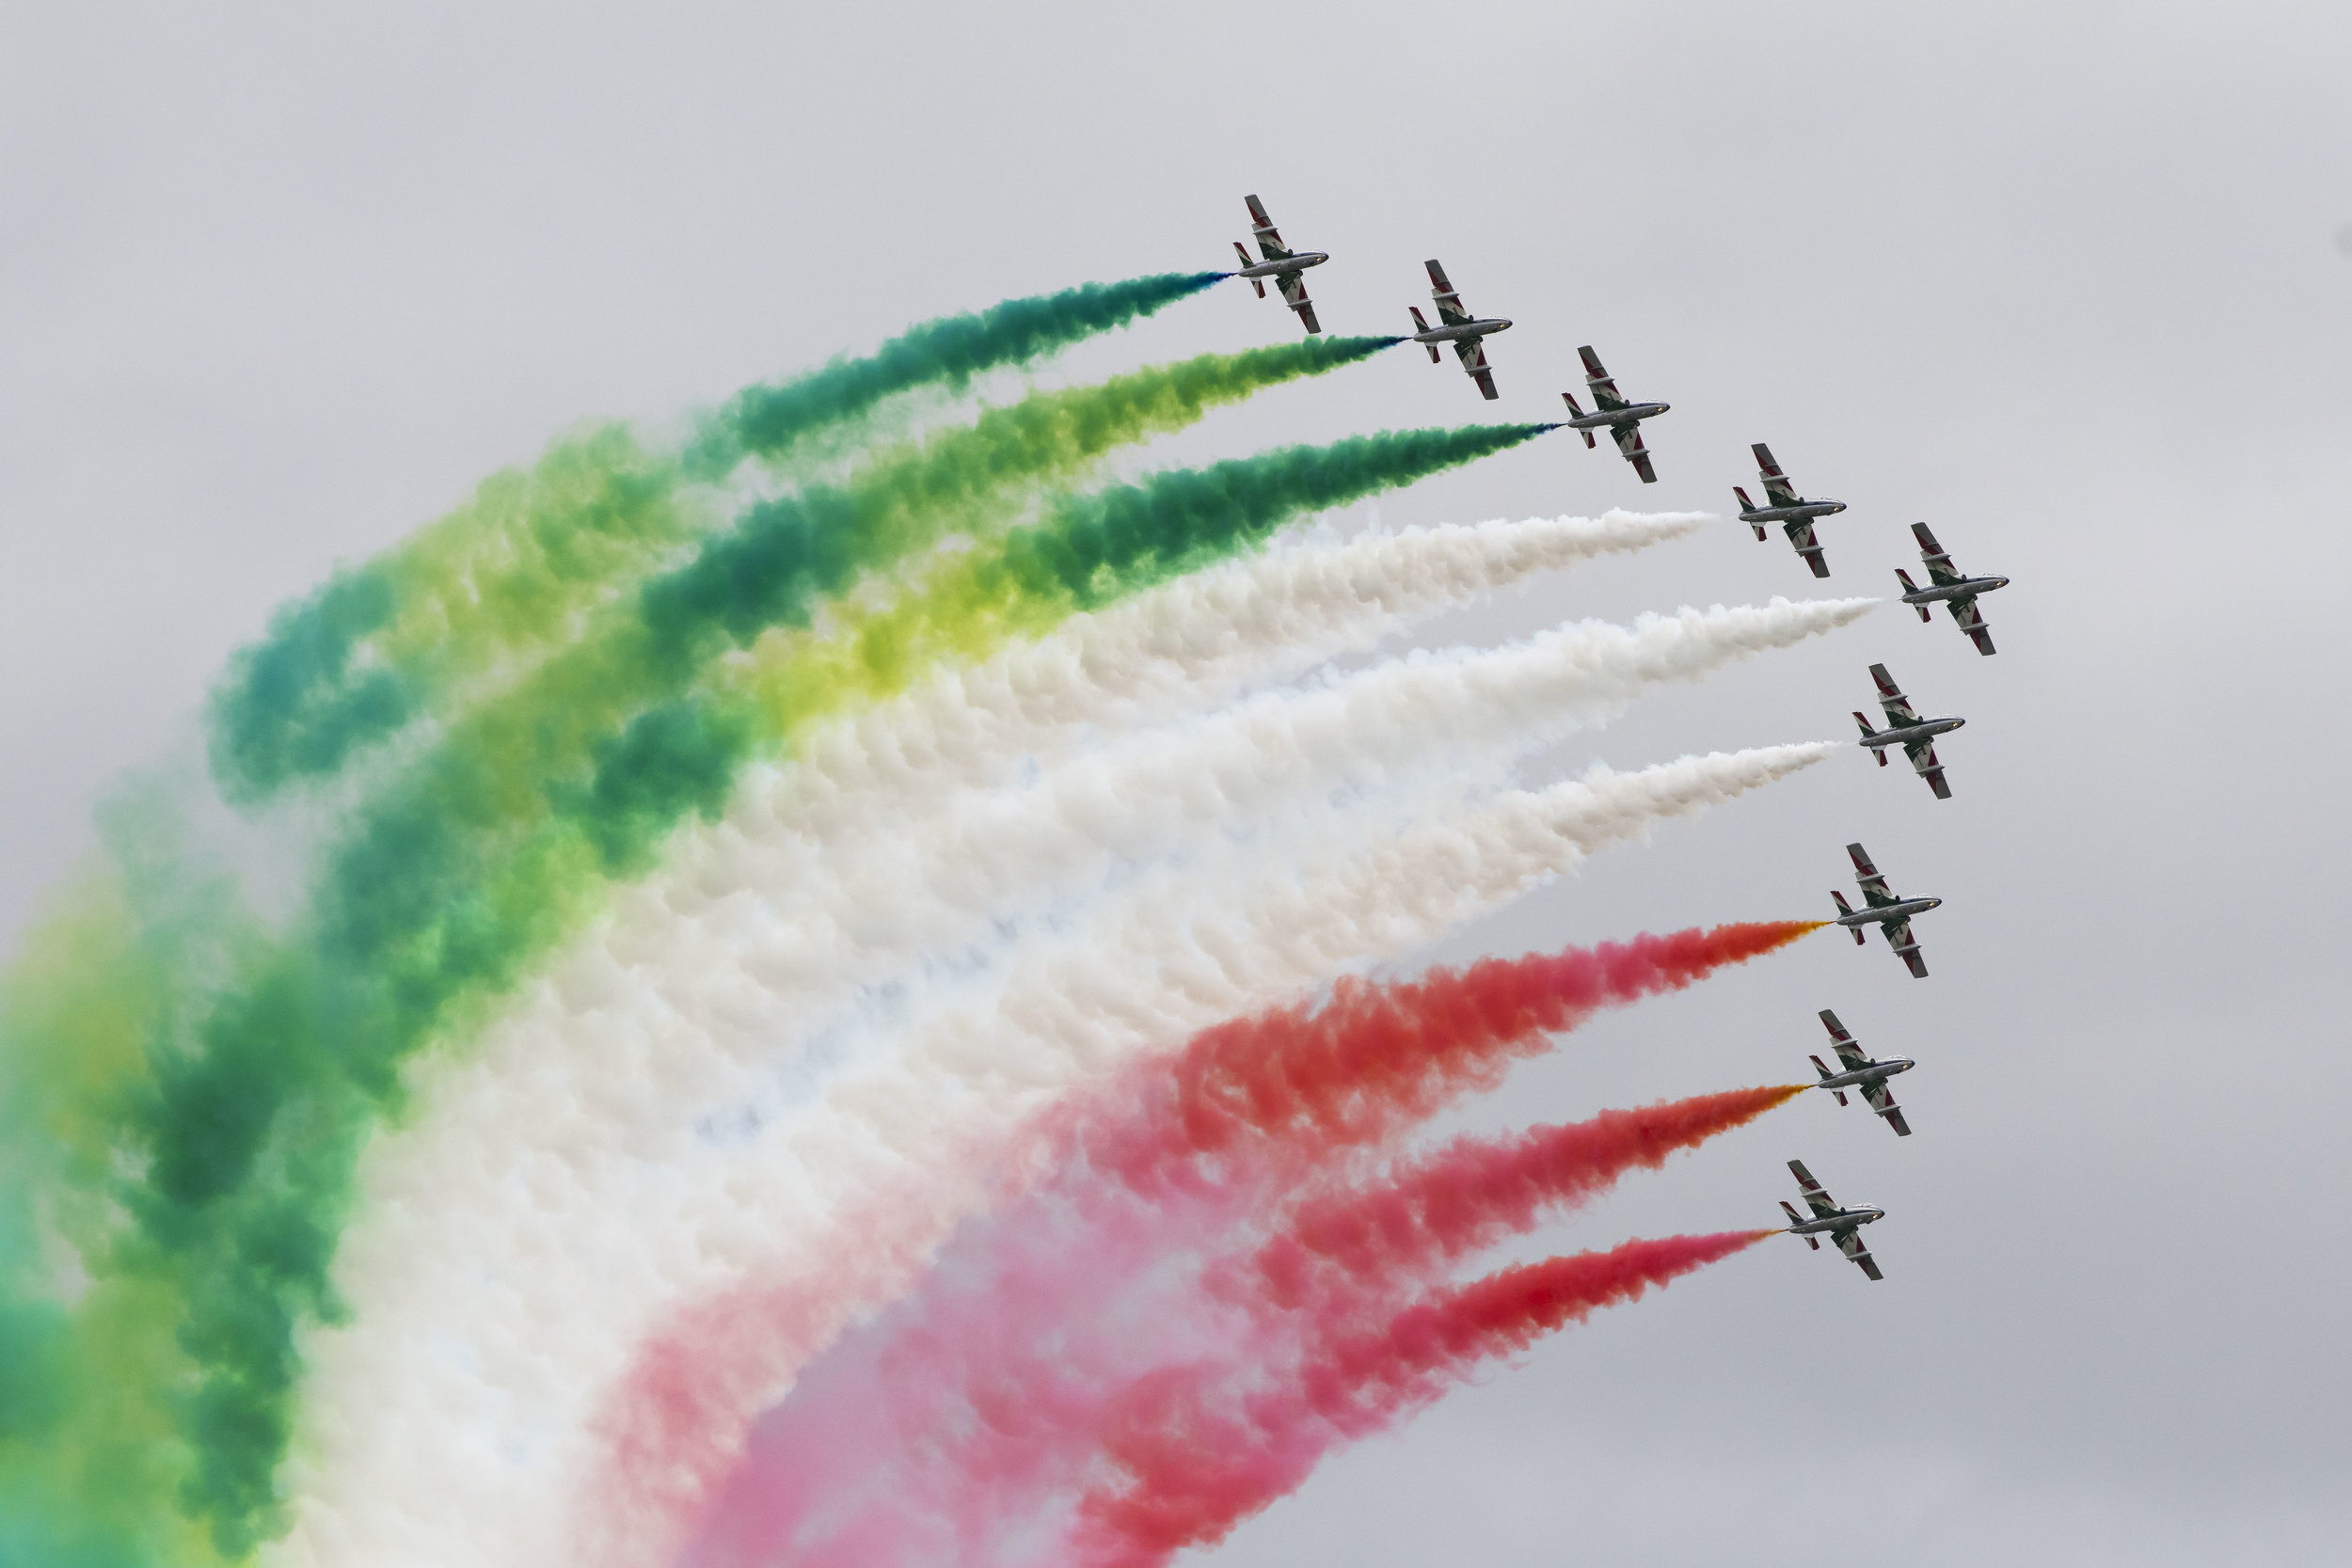 FAIRFORD, ENGLAND - JULY 21: The Frecce Tricolori of the Italian Air Force perform during the International Air Tattoo at RAF Fairford on July 21, 2019 in Fairford, England. The Royal International Air Tattoo (RIAT) is the world's largest military air show, held in support of The Royal Air Force Charitable Trust. (Photo by Matthew Horwood/Getty Images)